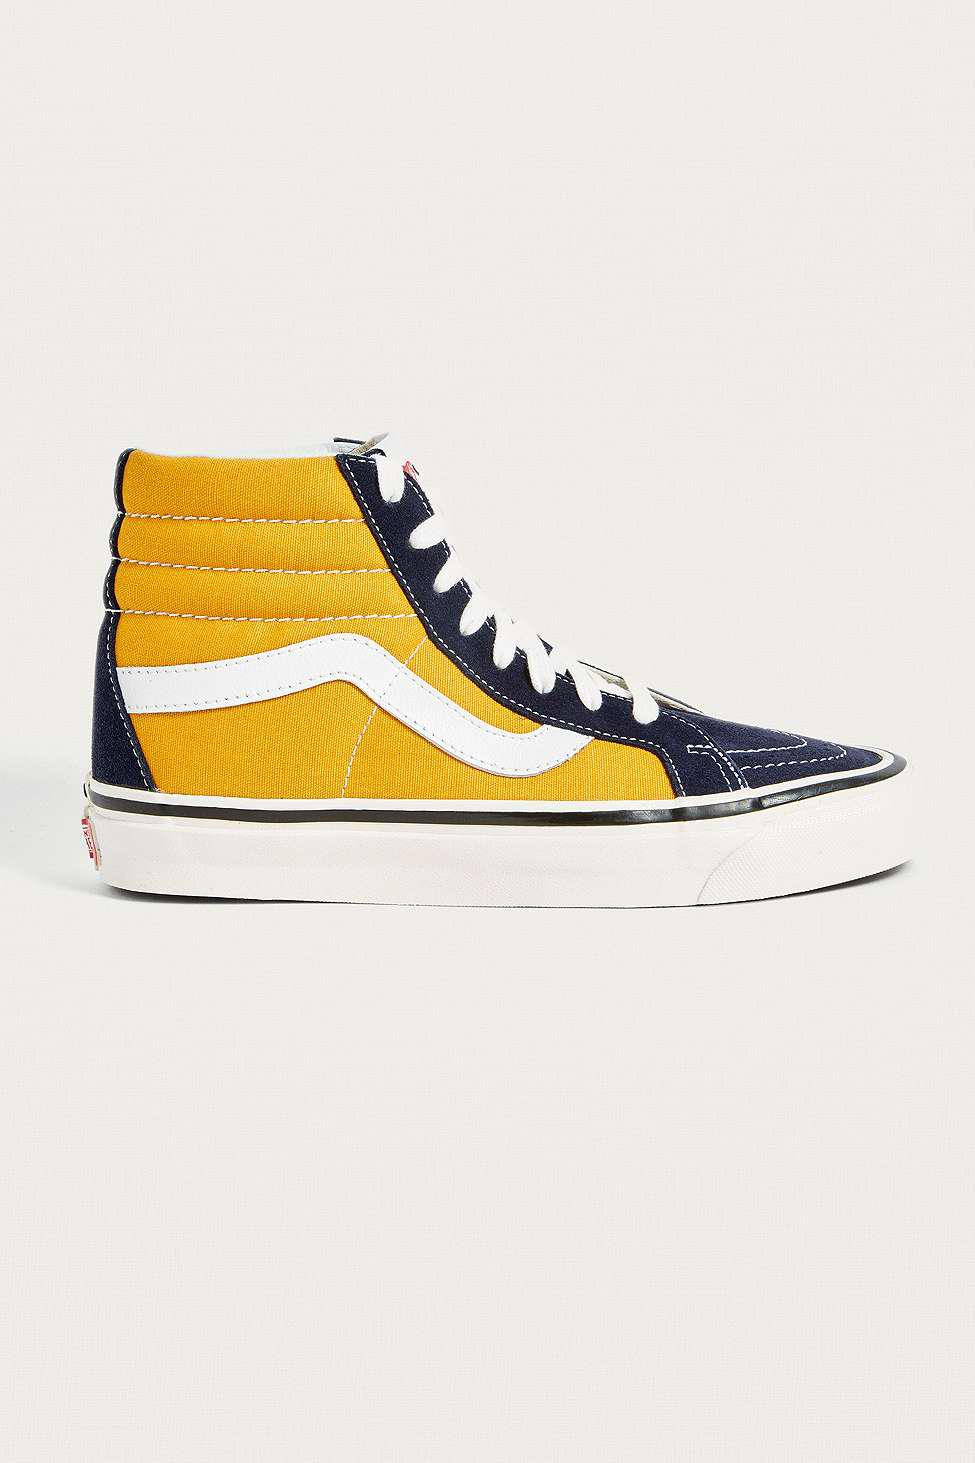 9a77c897fde Vans Sk8-hi Anaheim Factory 38 Dx Navy And Yellow Trainers - Womens ...